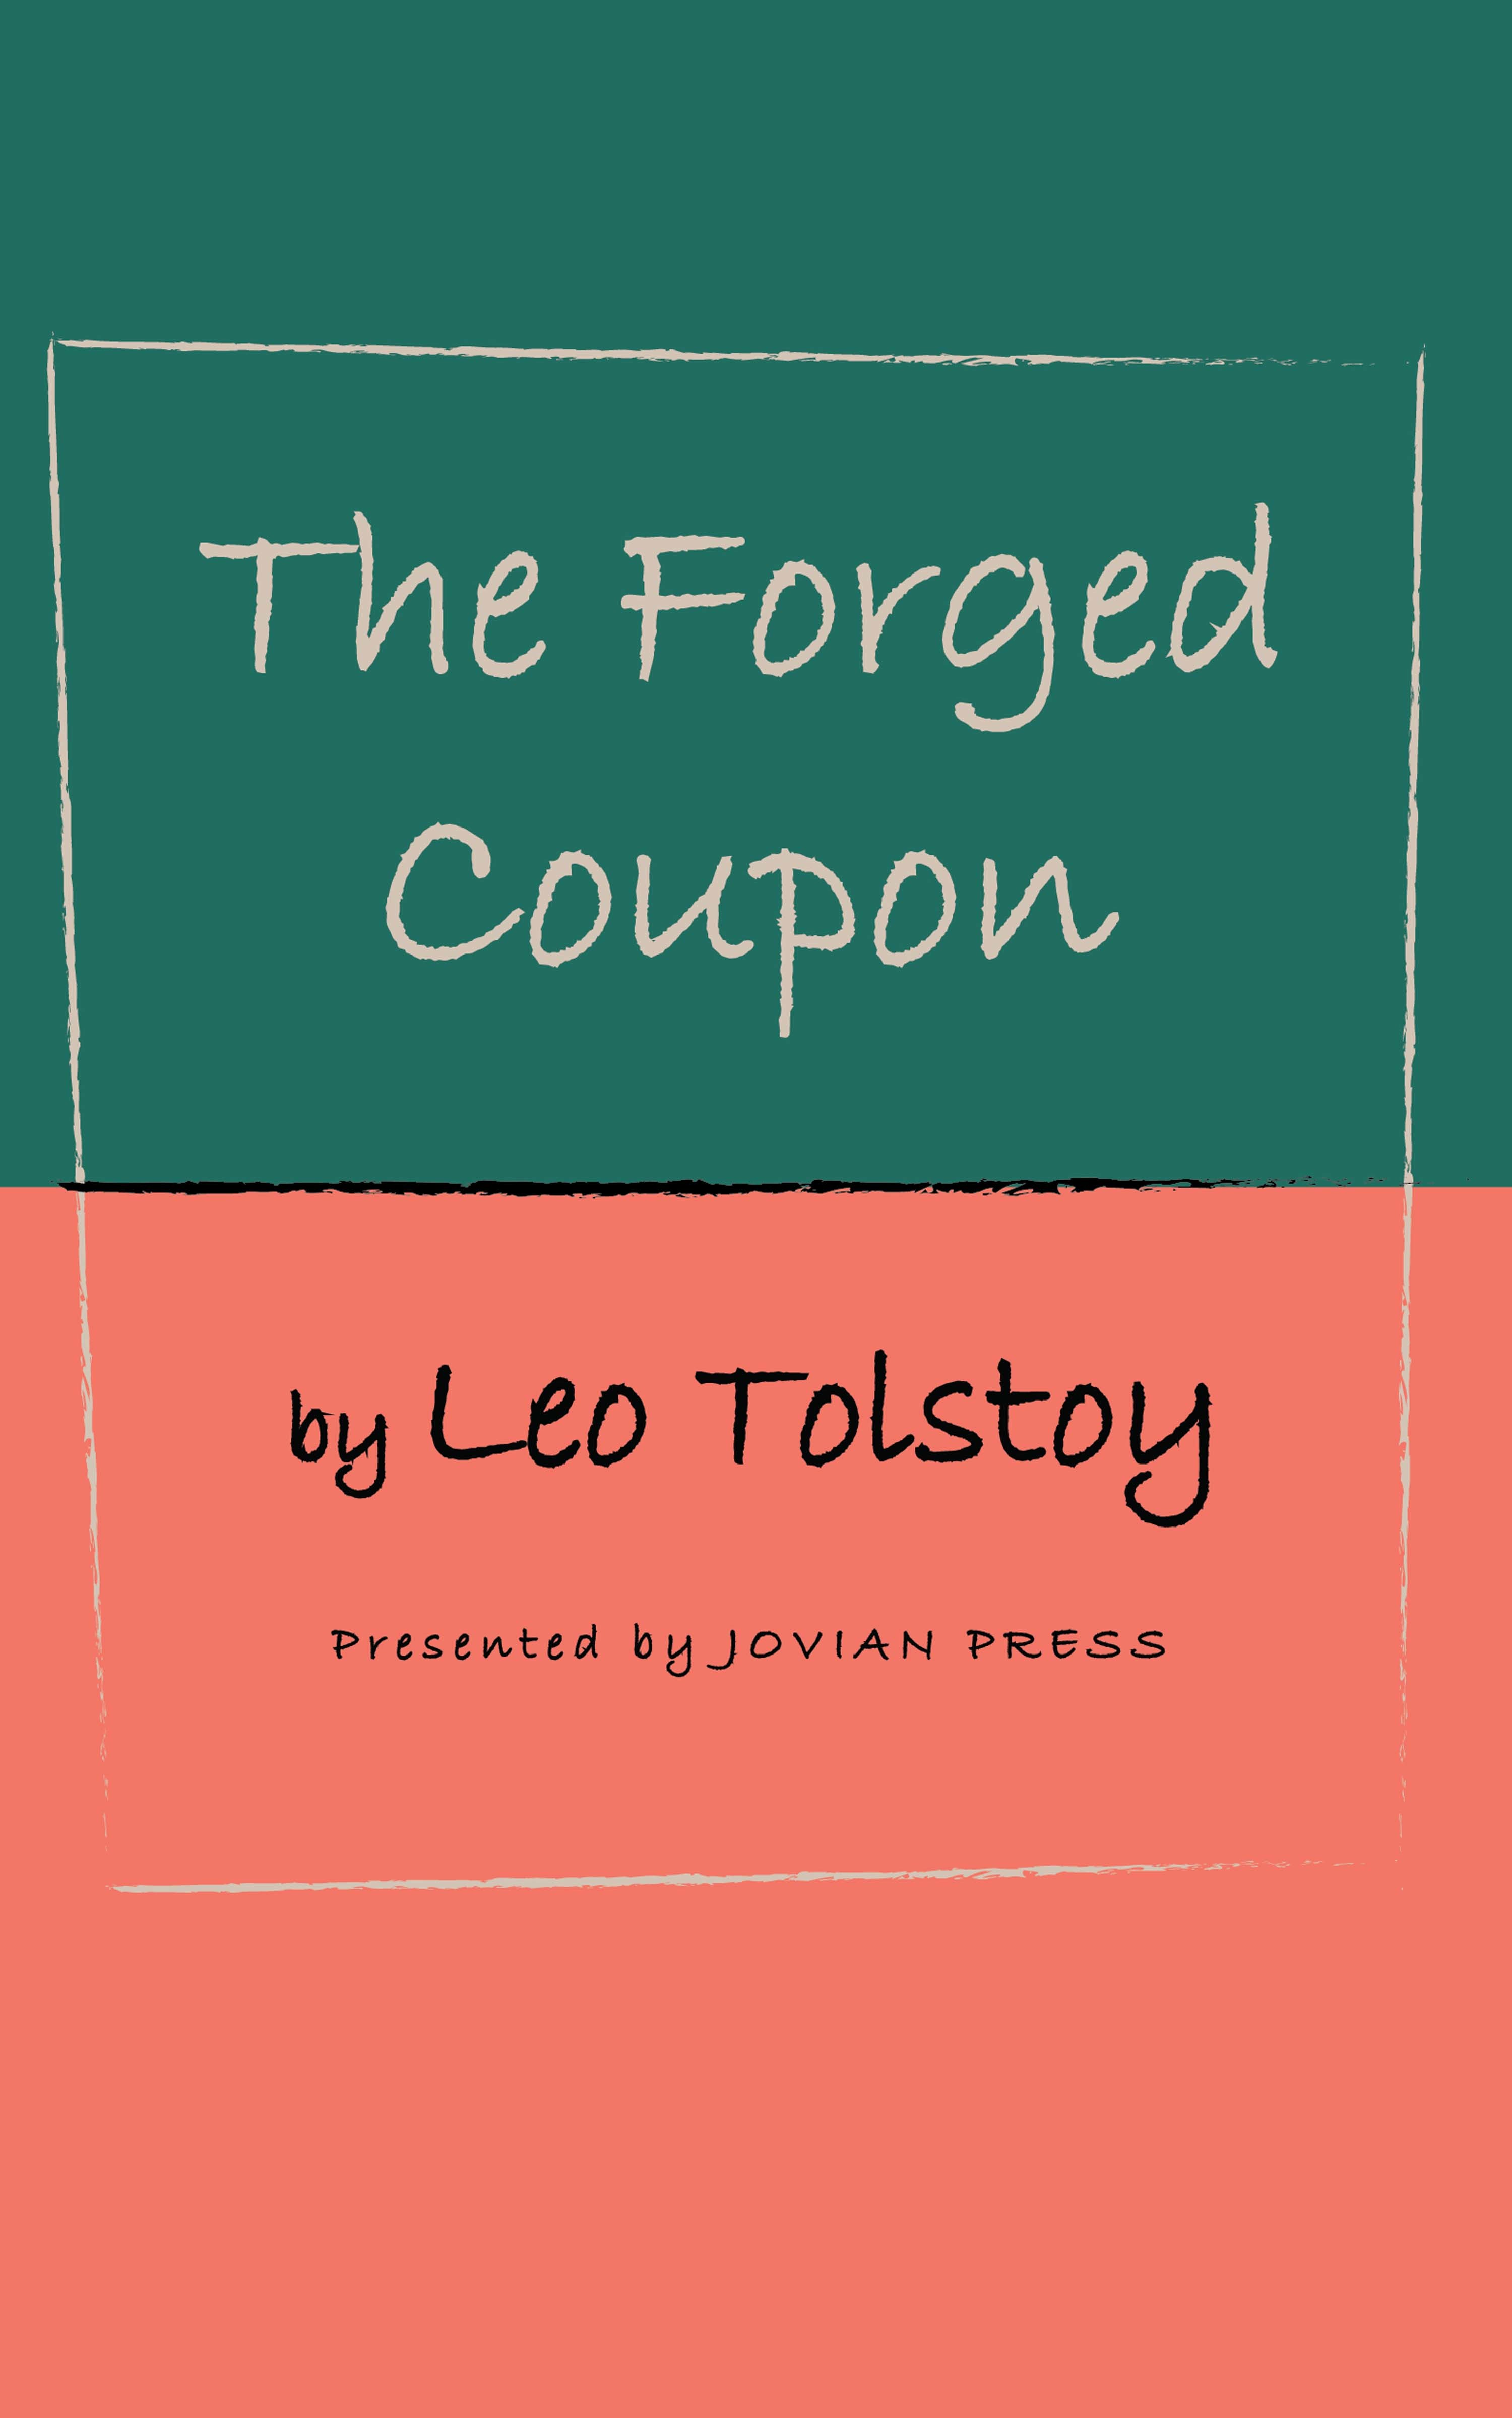 Leo Tolstoy The Forged Coupon